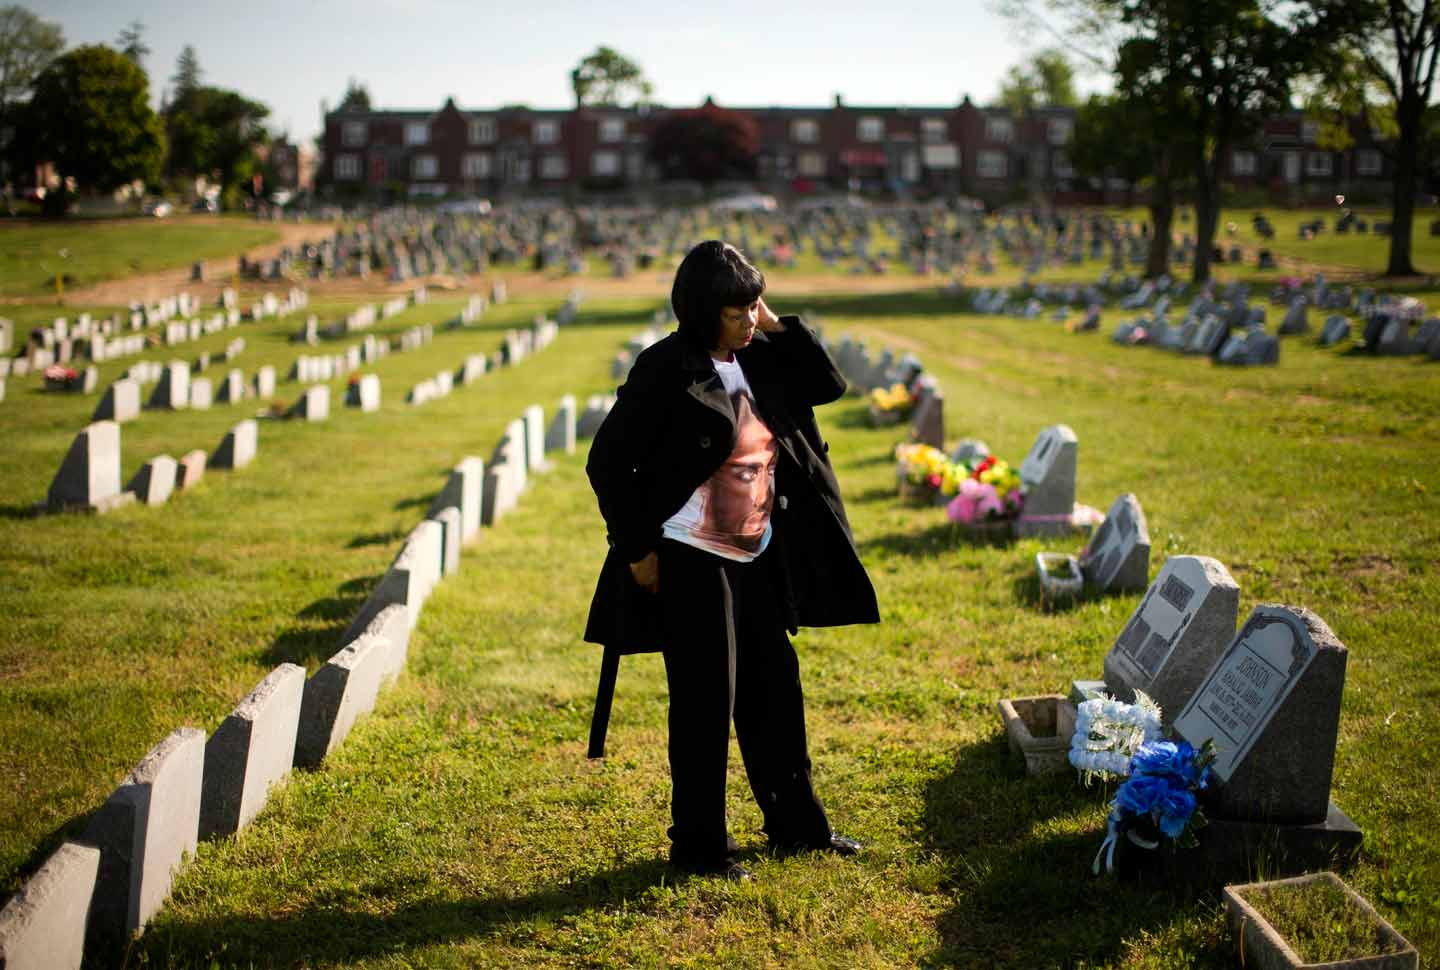 Dorothy Johnson-Speight visits the grave of her son, Khaaliq Jabbar Johnson, who was shot dead over a parking space dispute in 2001, Philadelphia, May 9, 2016.  (AP Photo / Matt Rourke)